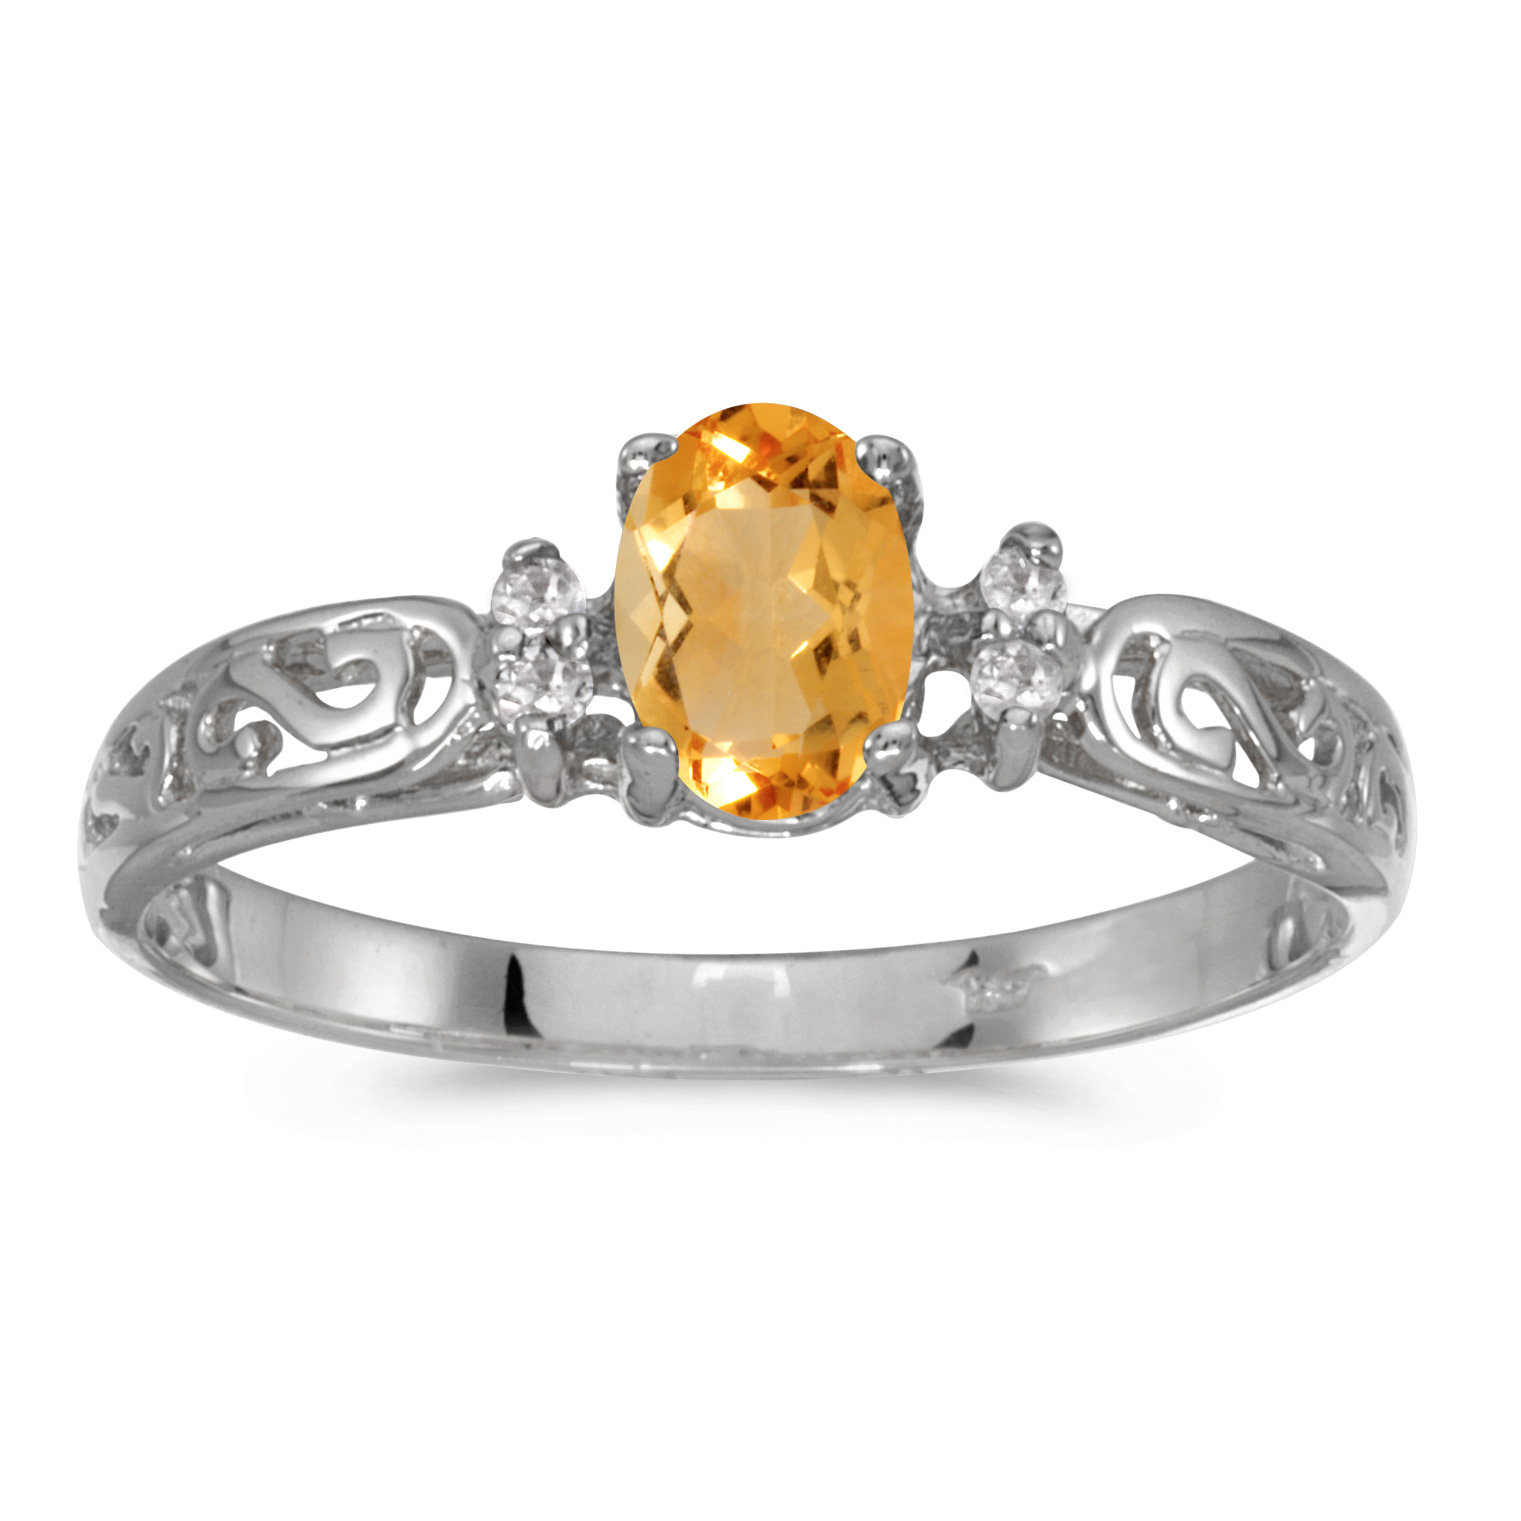 14k White Gold Oval Citrine And Diamond Filagree Ring by